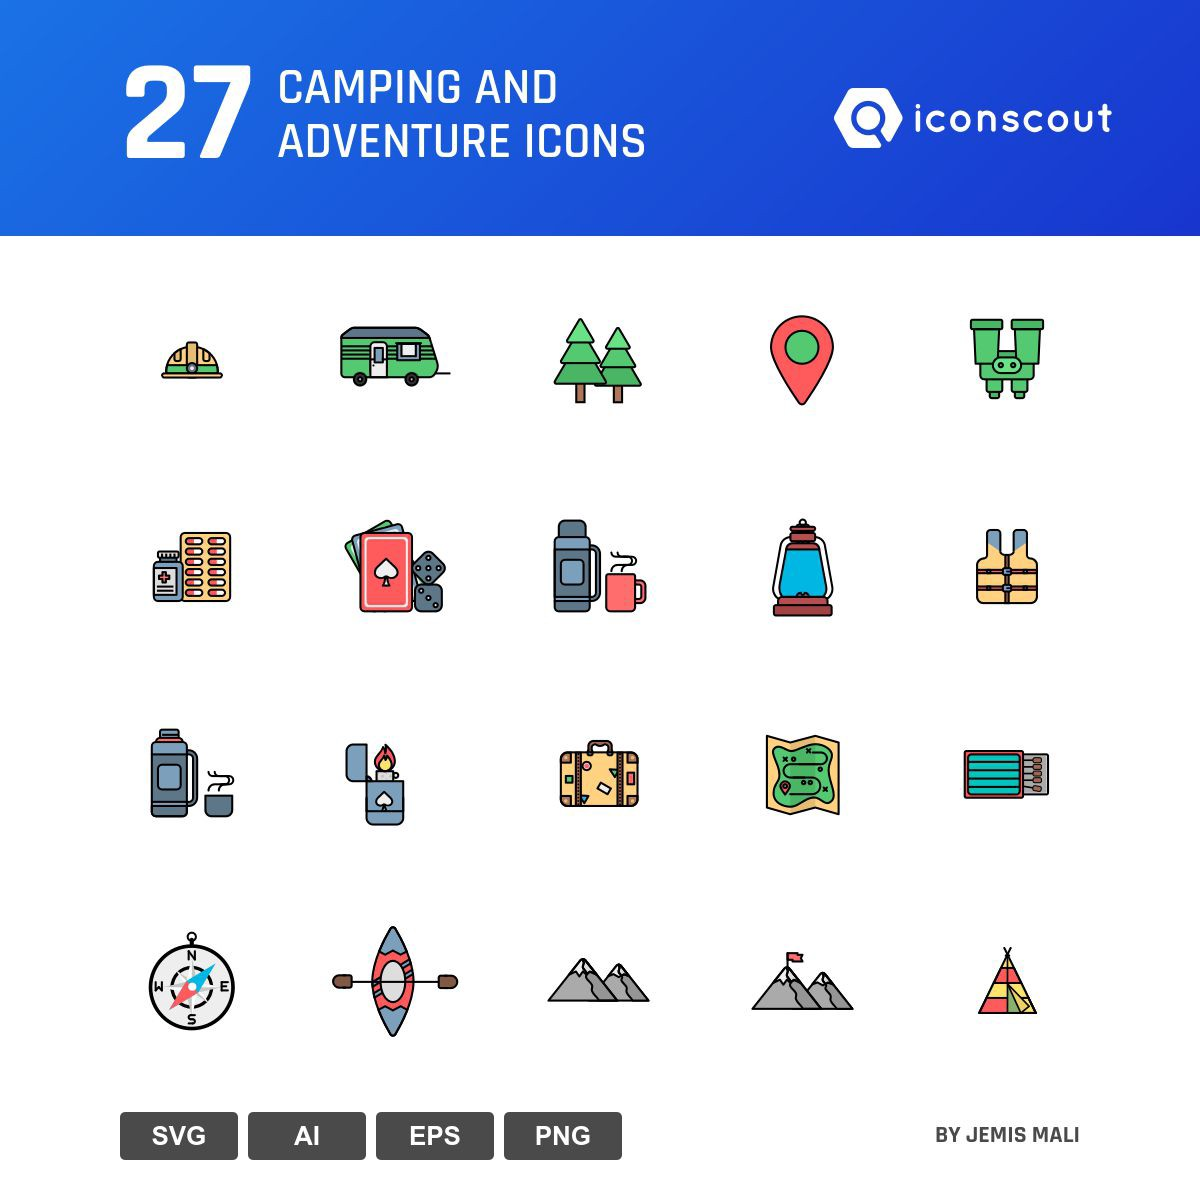 Camping And Adventure icons by Jemis Mali